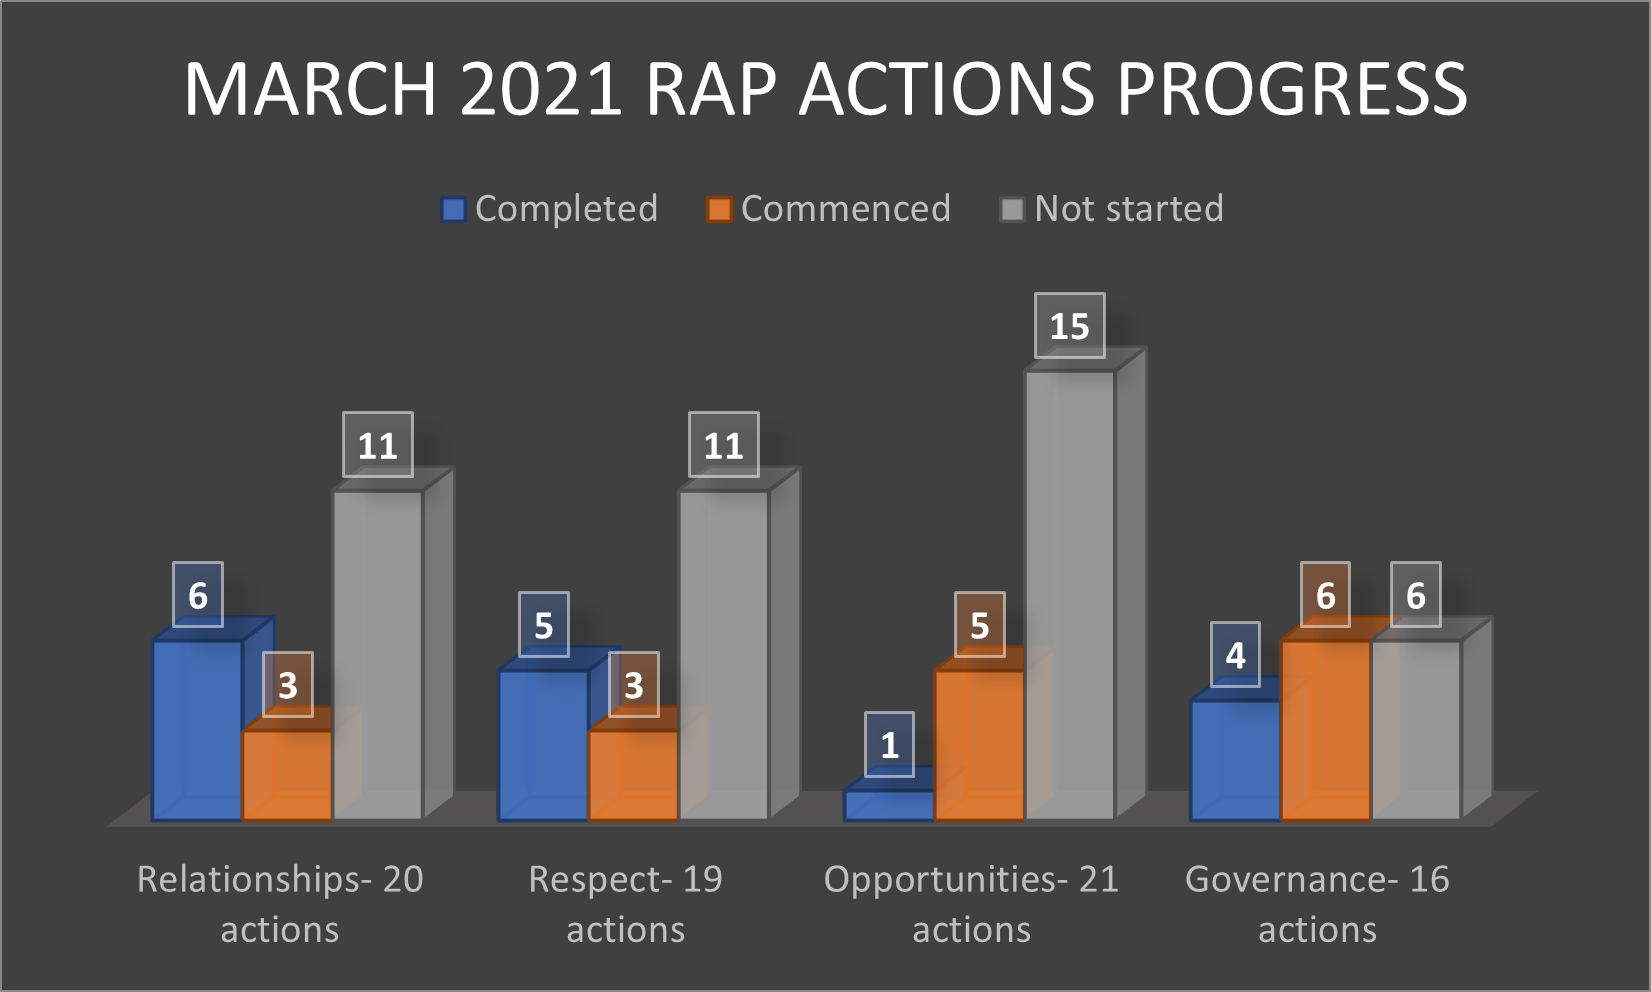 MARCH 2021 Q1 rap actions progress